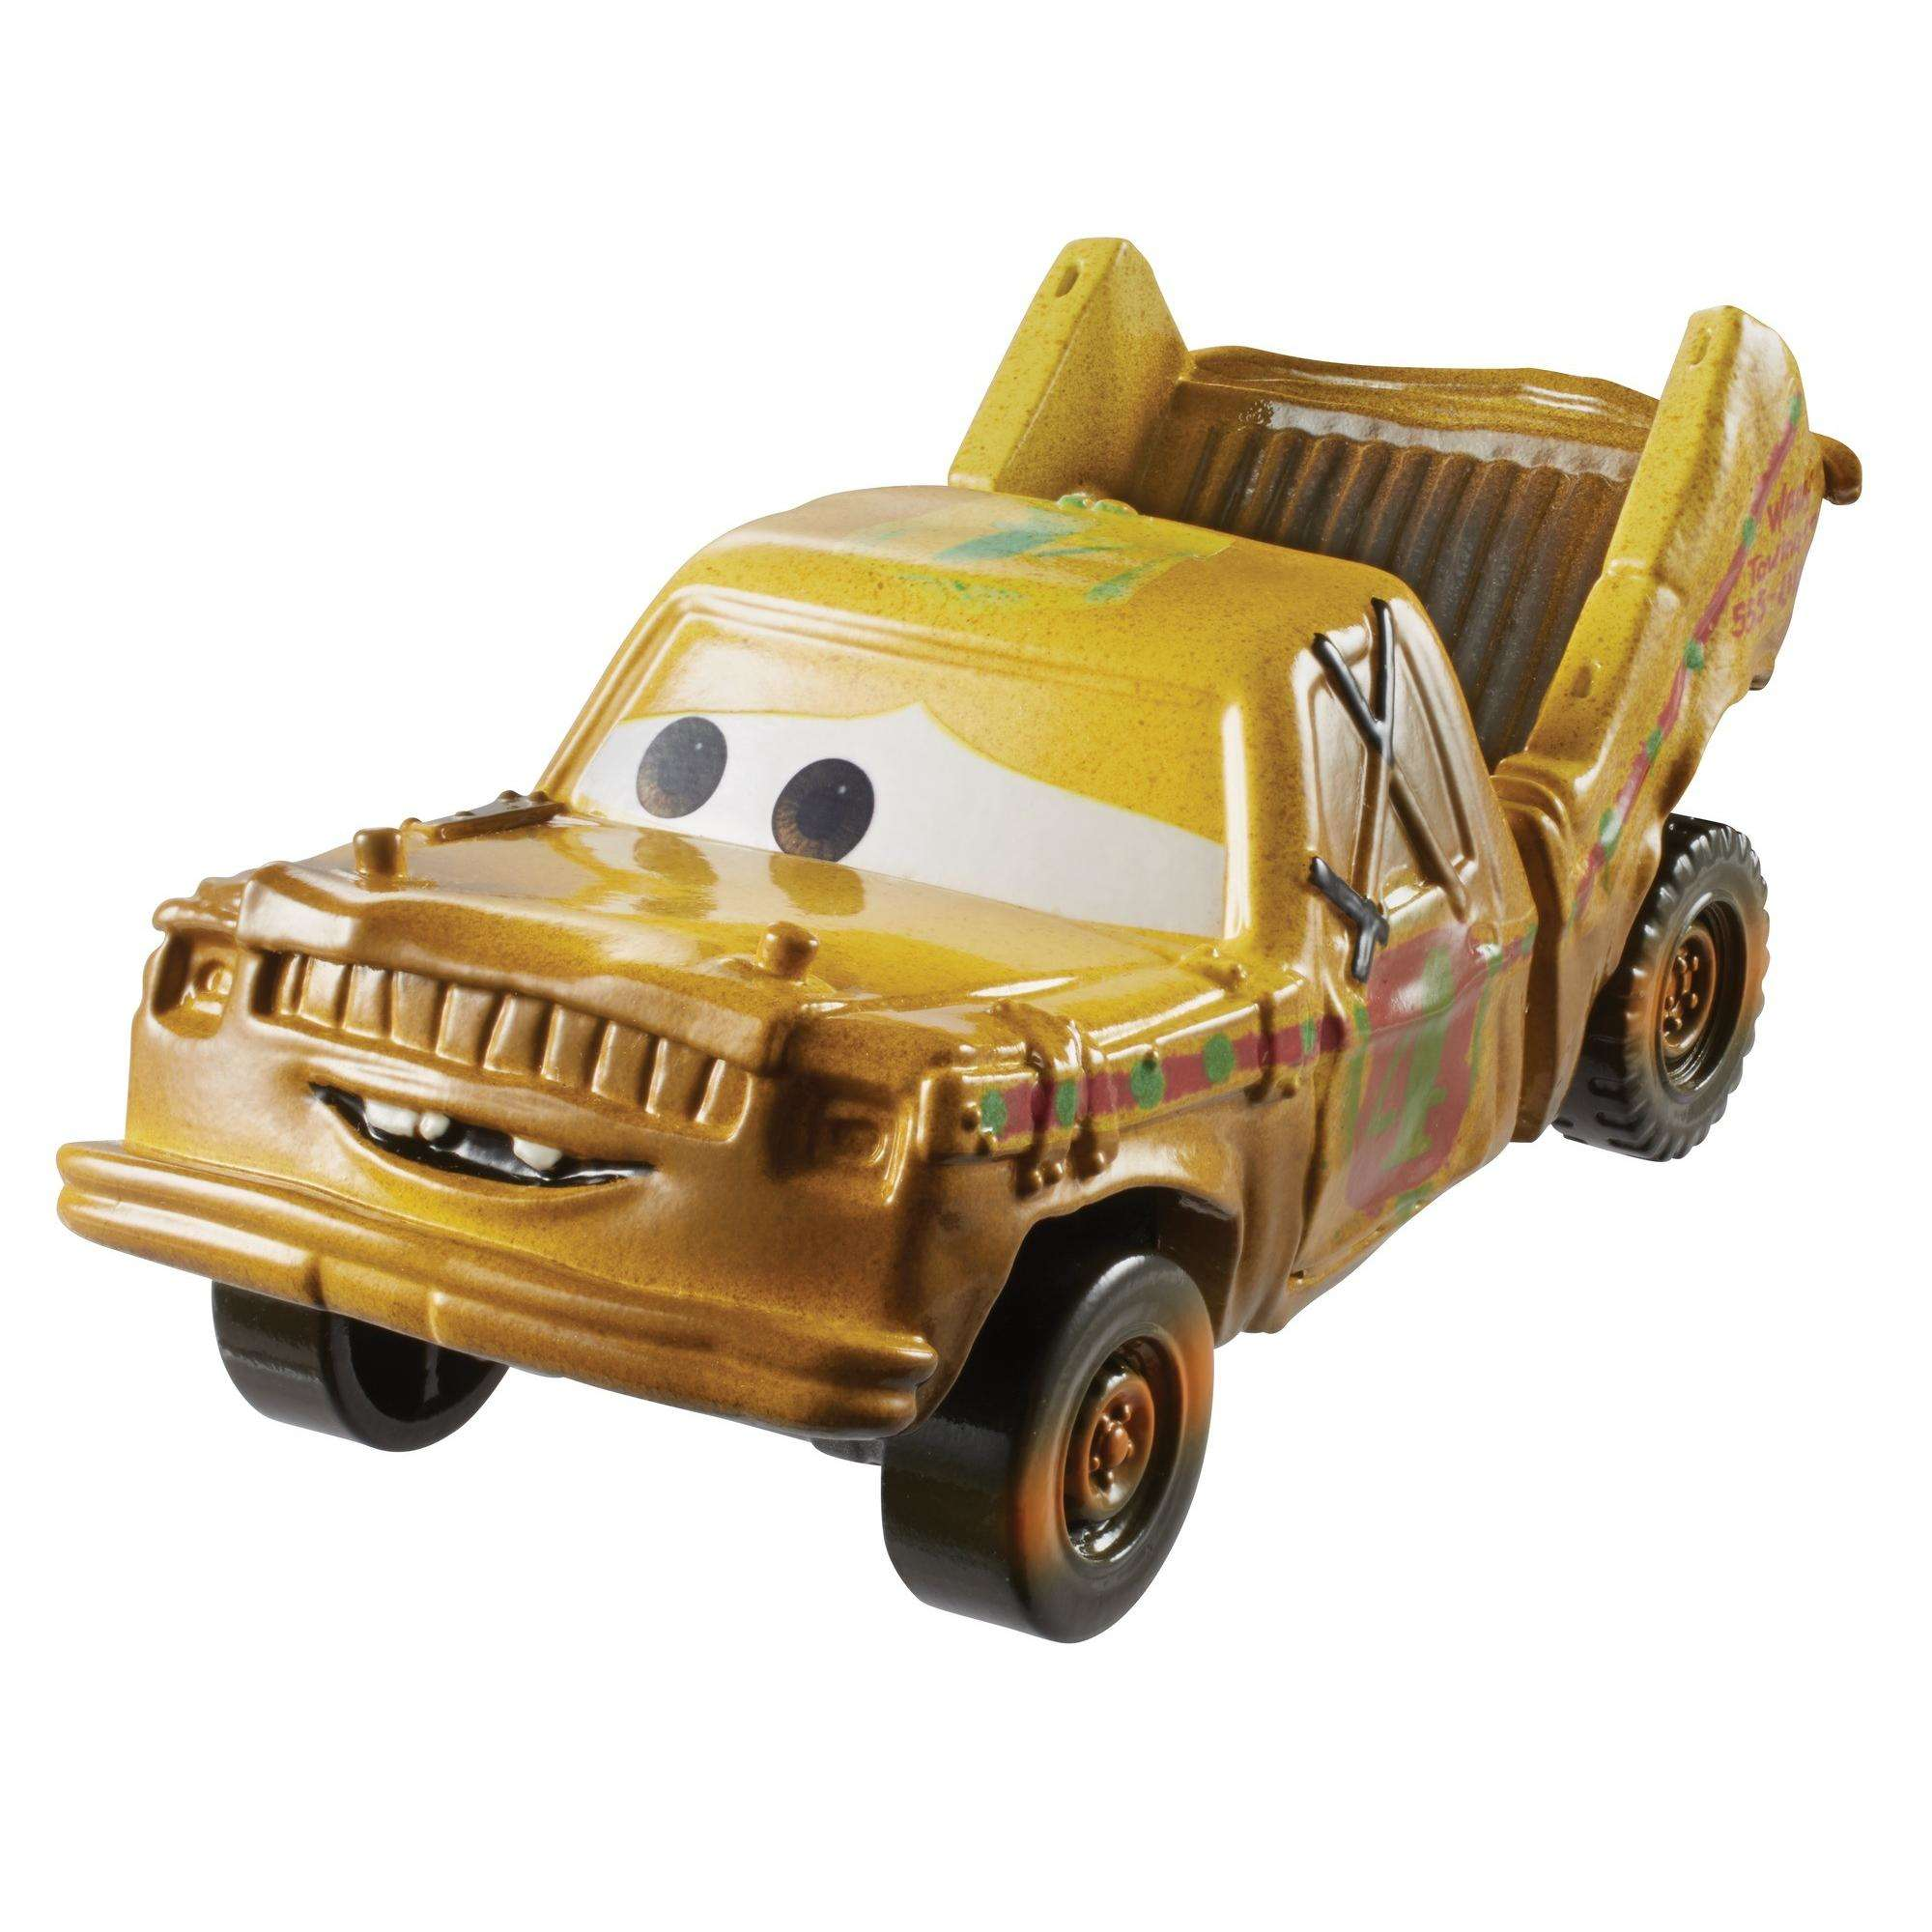 Disney Pixar Cars 3 Taco Die Cast Character Vehicle Walmart Com